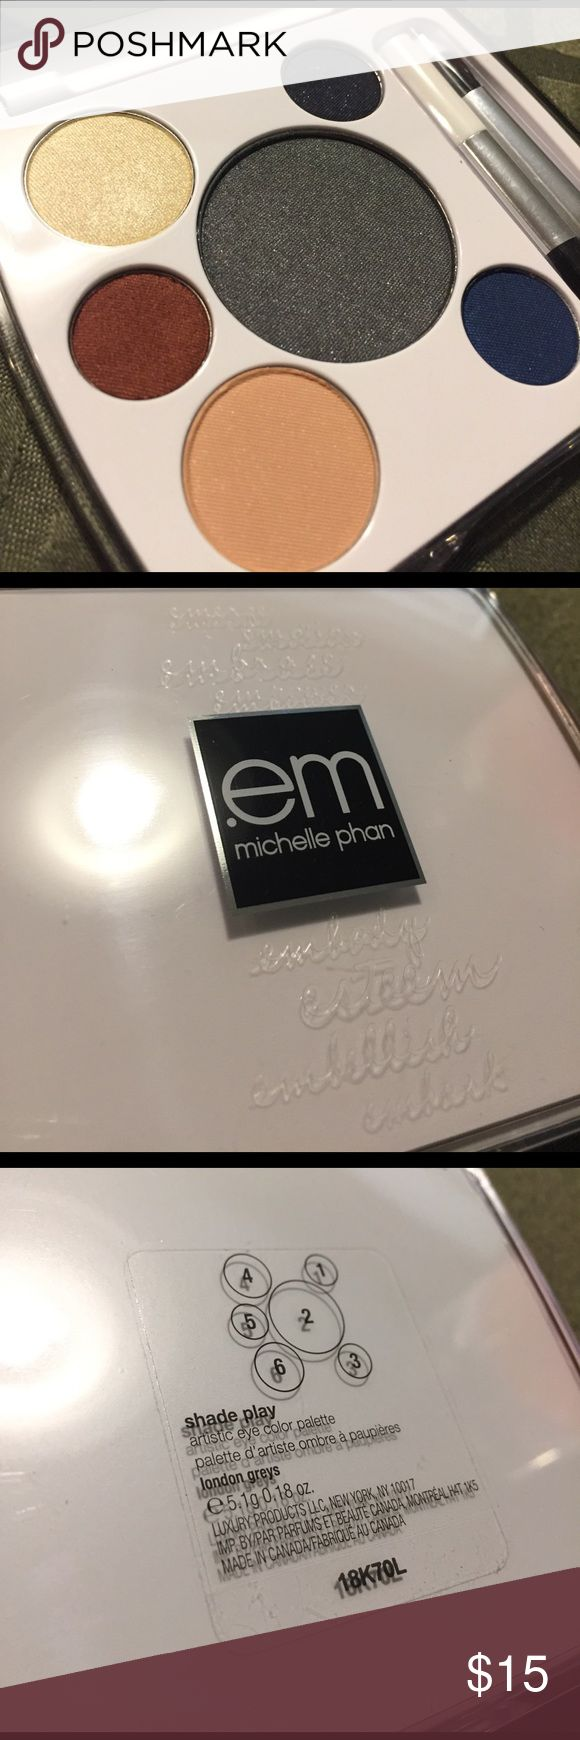 Em Cosmetics Shade Play London Greys Palette In excellent condition. Never Used, no pan hit and still lots of product. Always Authentic.  *Message for any other info* *My products are ALWAYS AUTHENTIC. I only by from Ulta, Sephora, or the cosmetic company's website.* MAC Cosmetics Makeup Eyeshadow